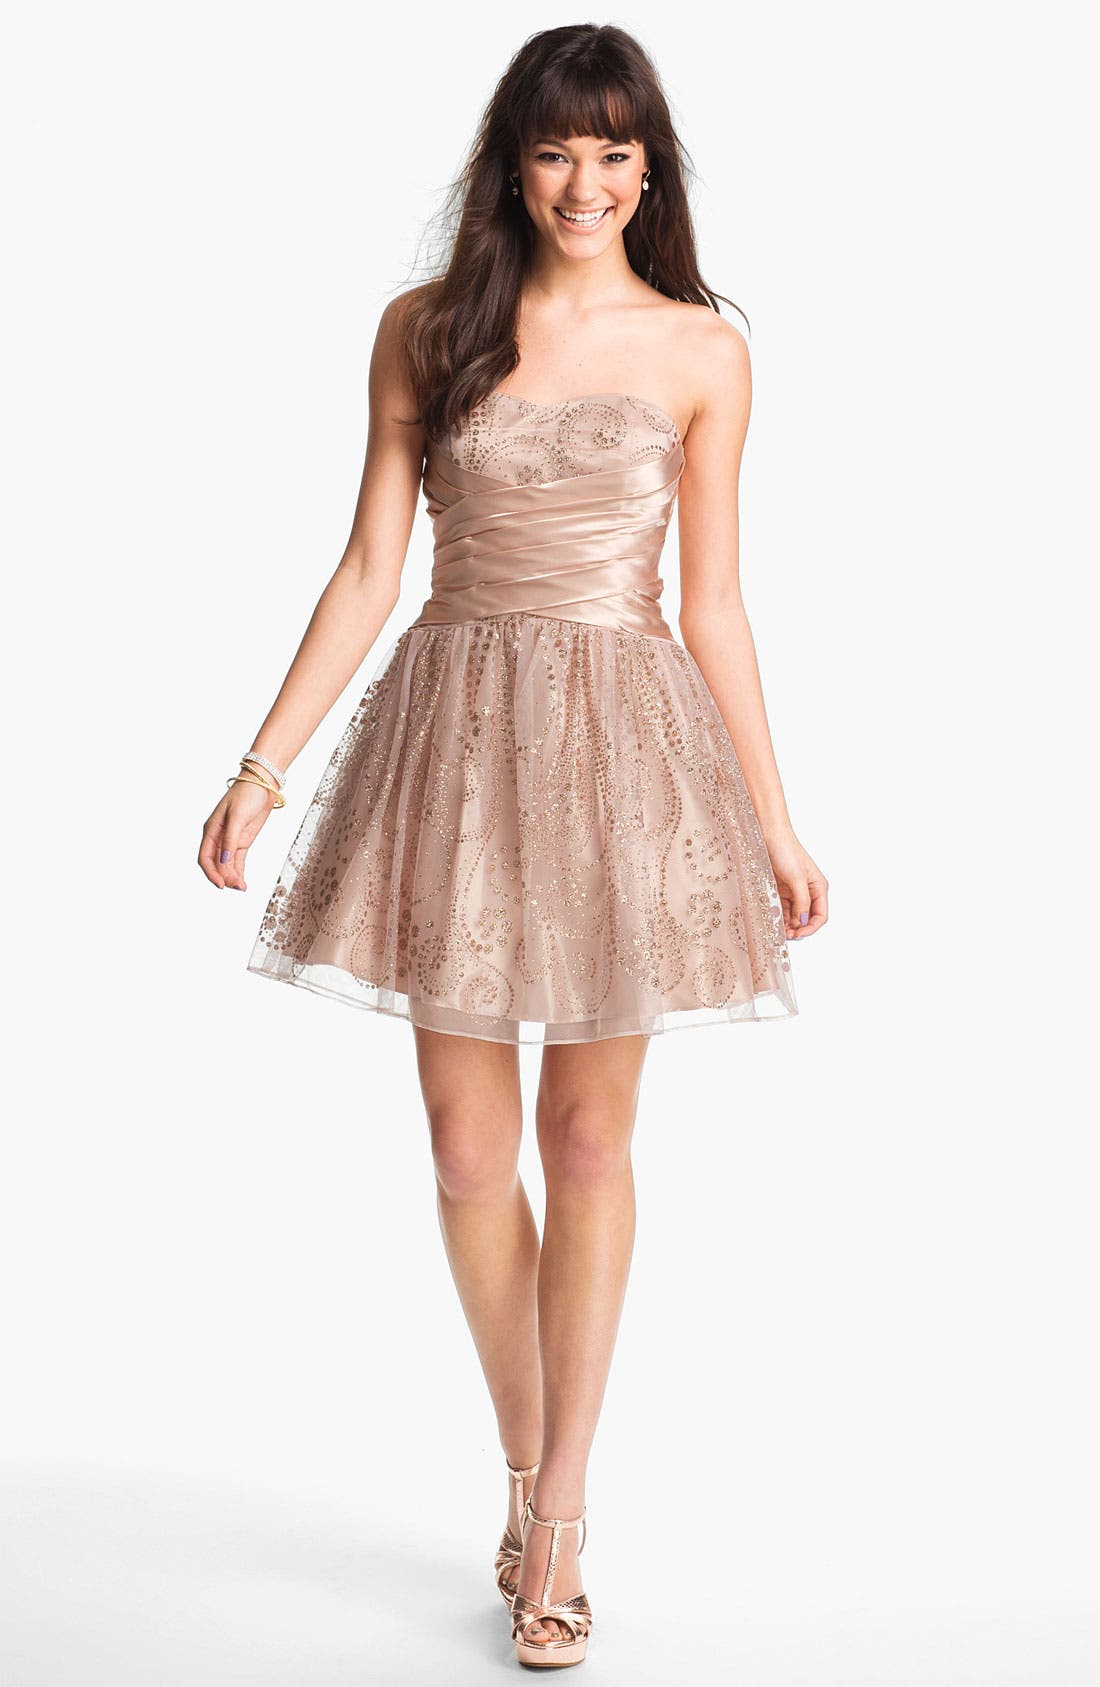 Alternate Image 1 Selected - Hailey Logan Satin & Glitter Chiffon Party Dress (Juniors) (Online Only)